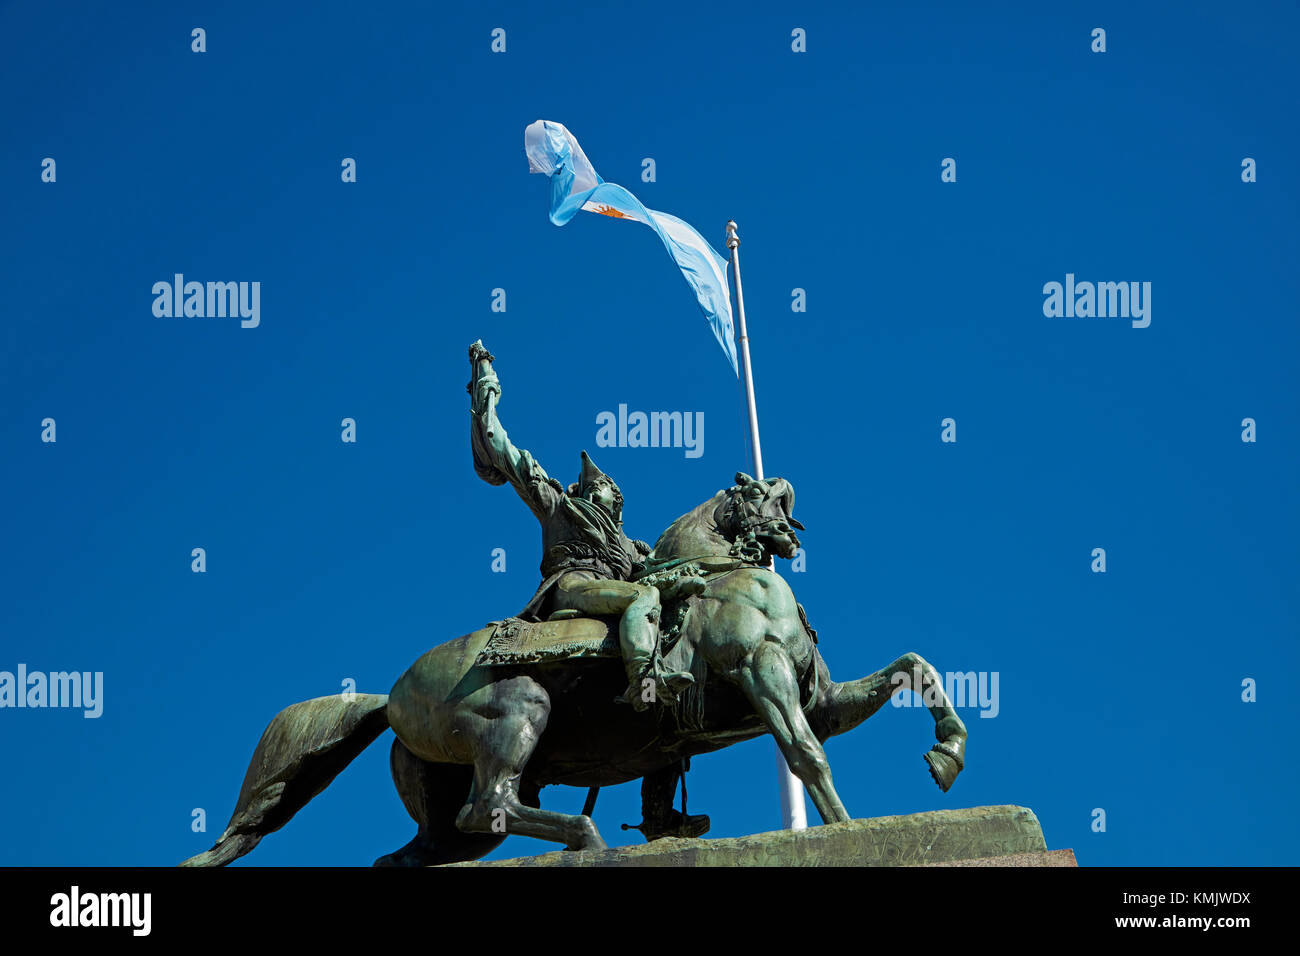 Statue of General Manuel Belgrano, and Argentine flag, Plaza de Mayo, Buenos Aires, Argentina, South America - Stock Image